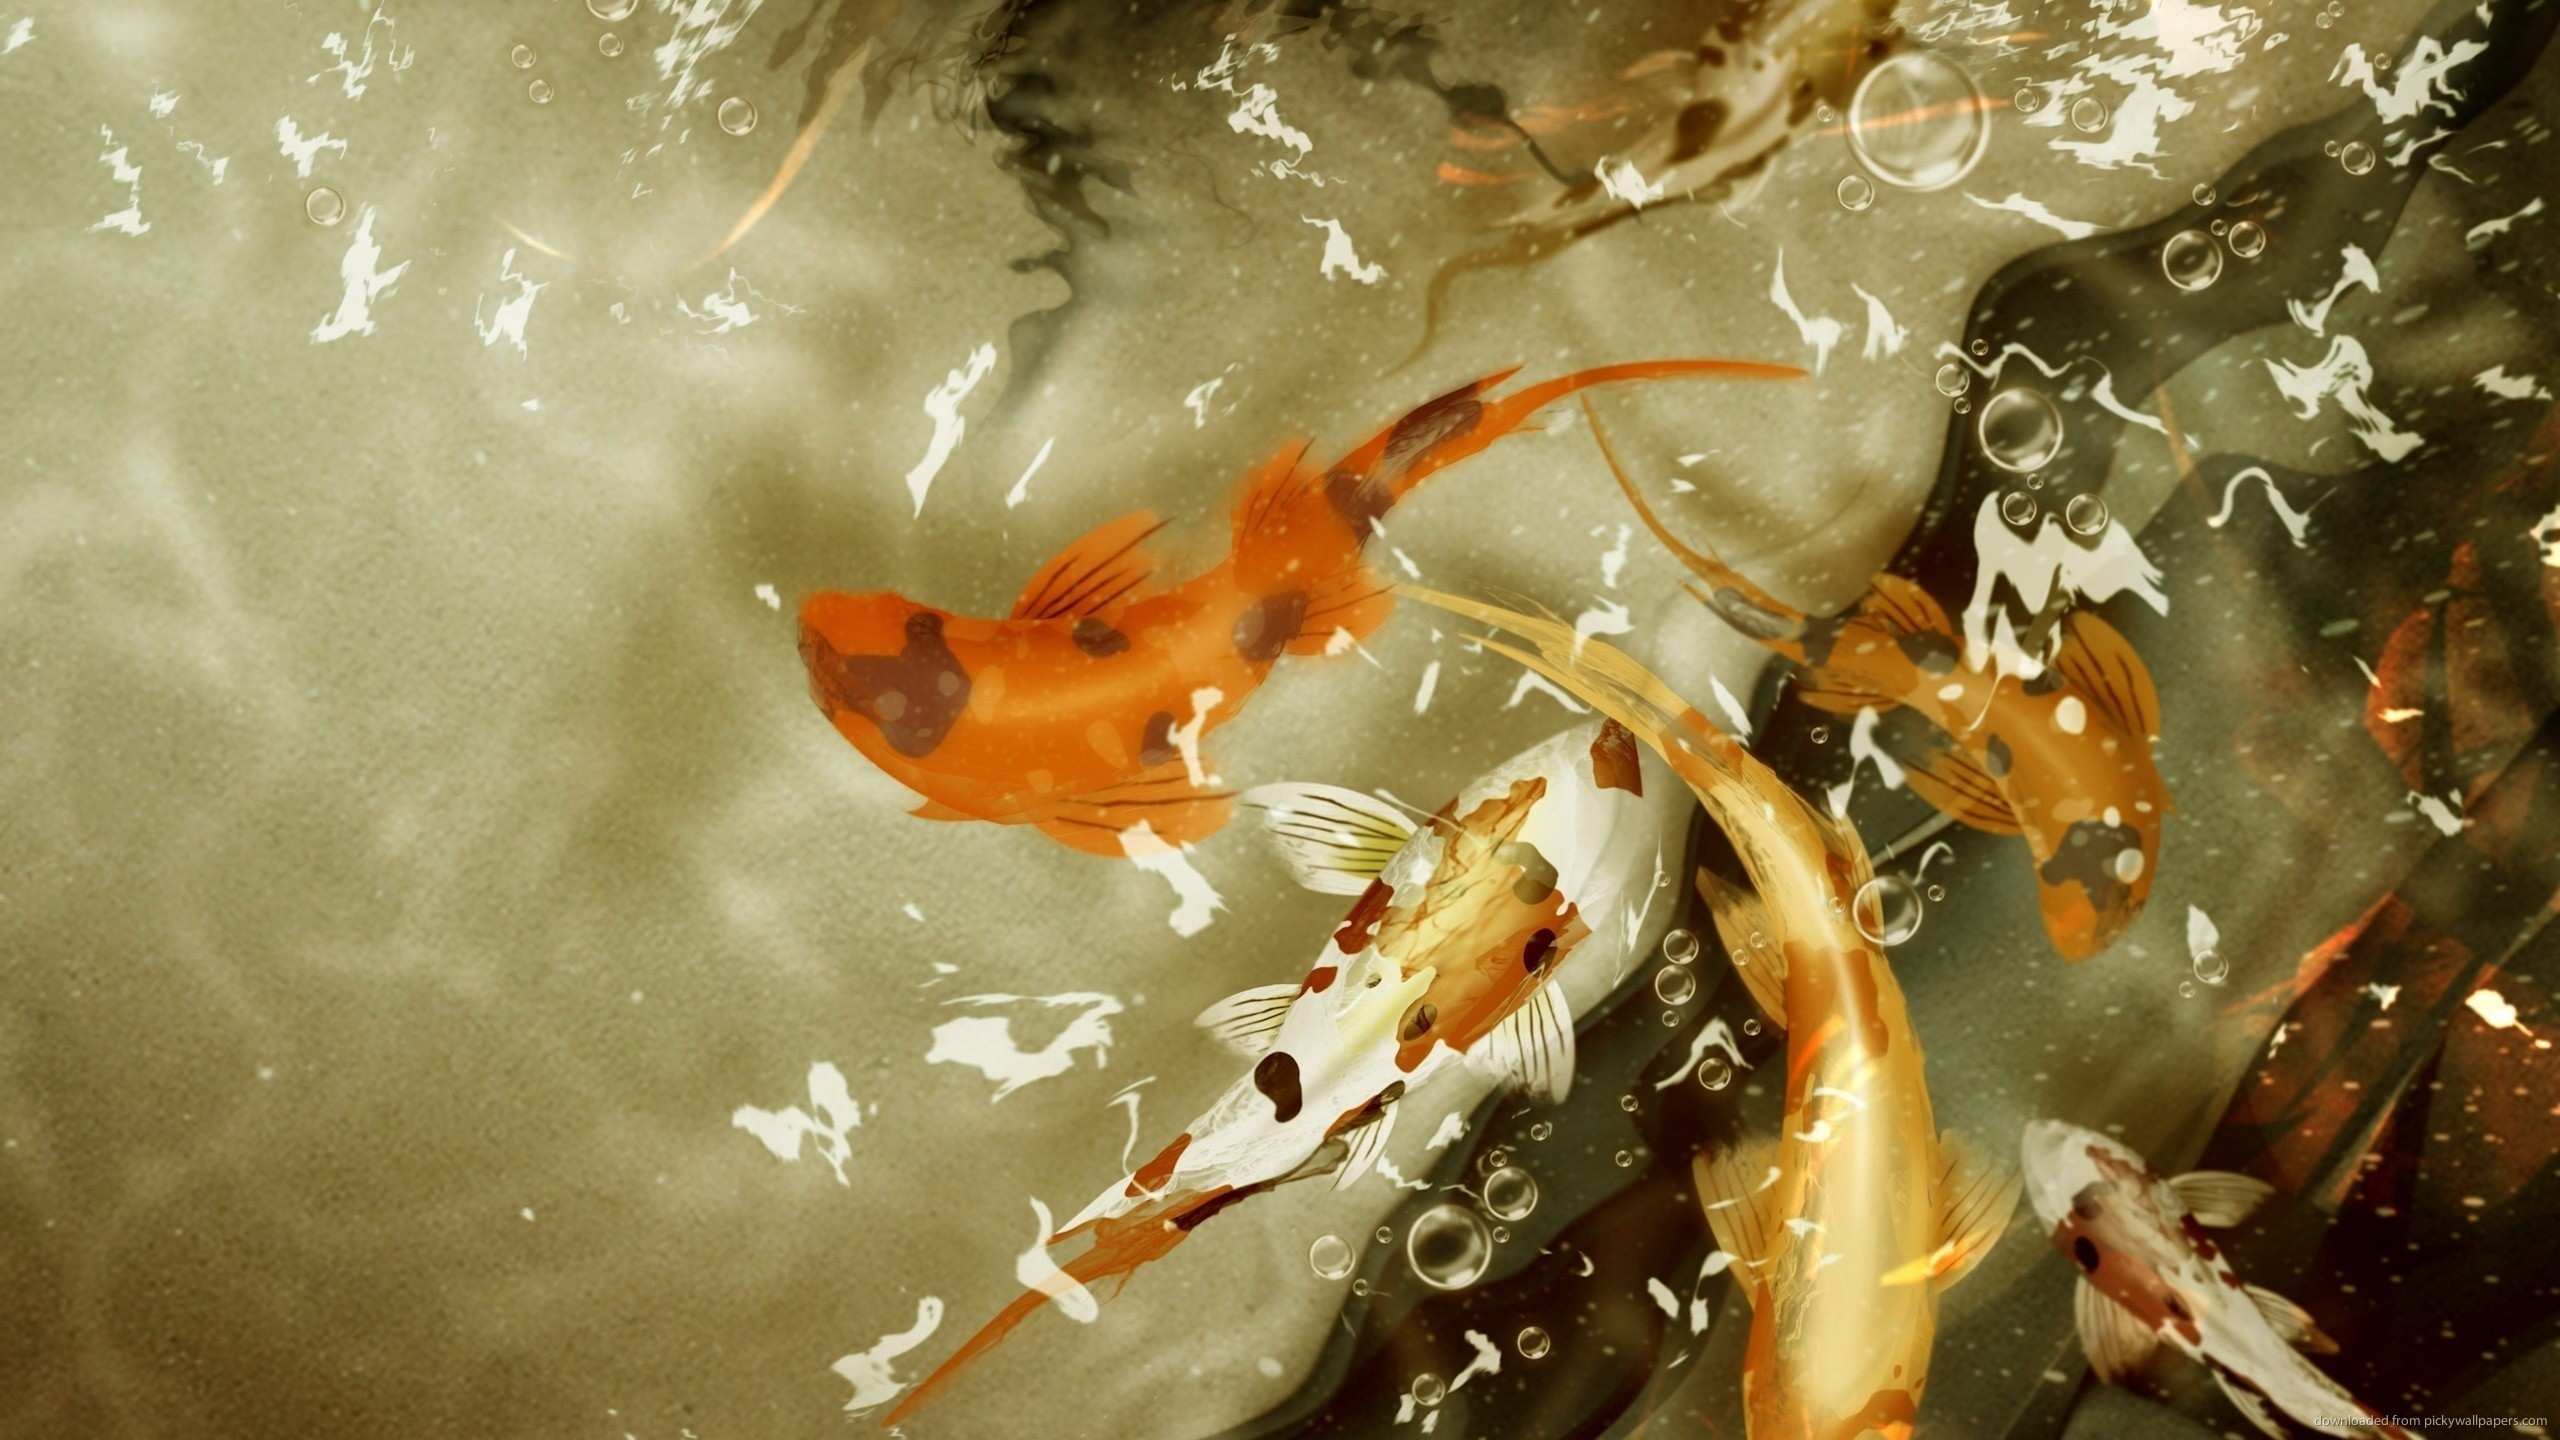 Living 3d Dolphins Animated Wallpaper Windows 7 Koi Live Wallpaper For Pc 41 Images